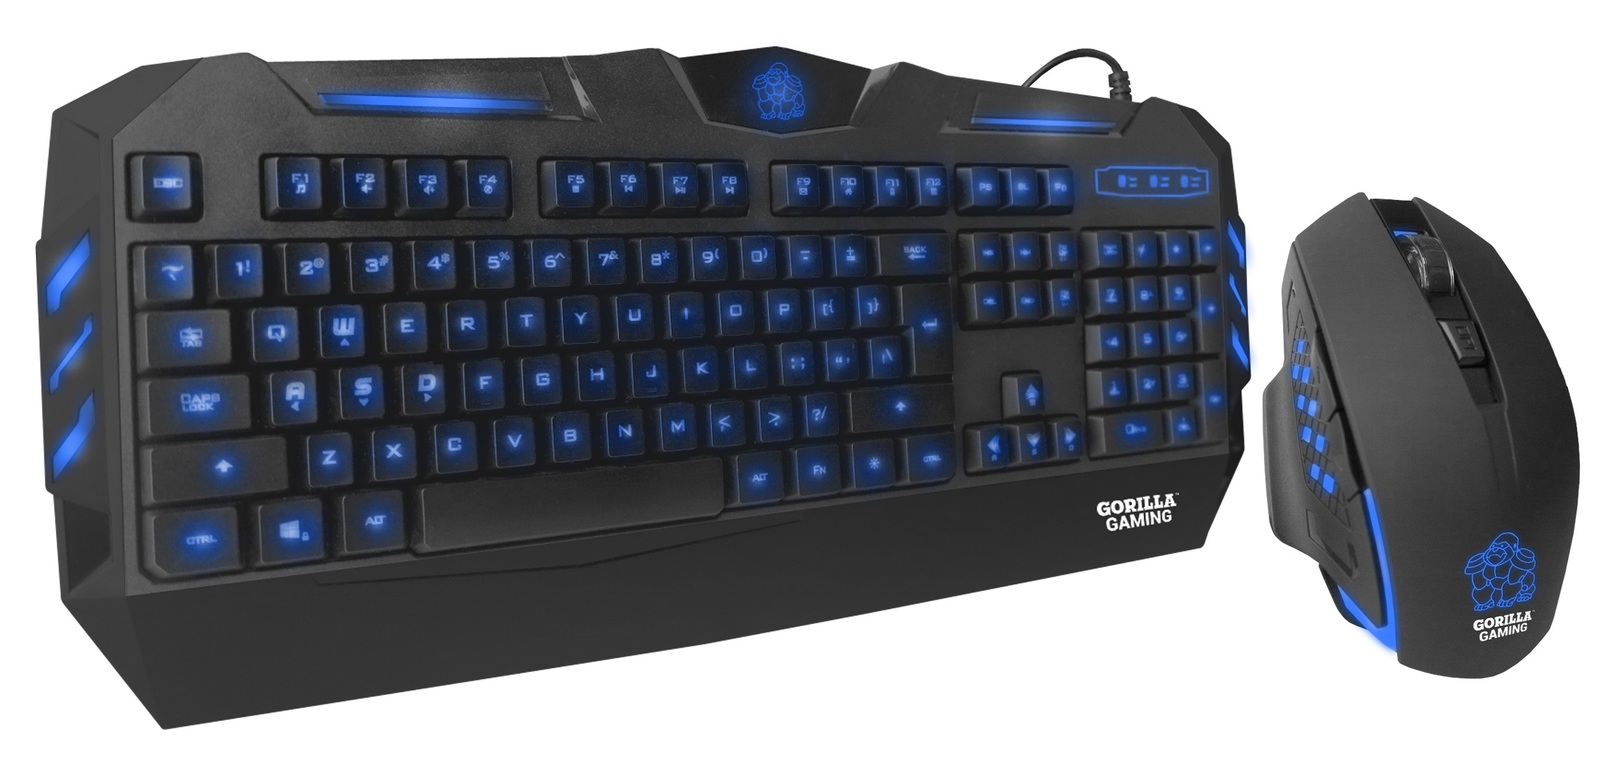 Gorilla Gaming Predator Gaming Combo (Blue) for PC Games image